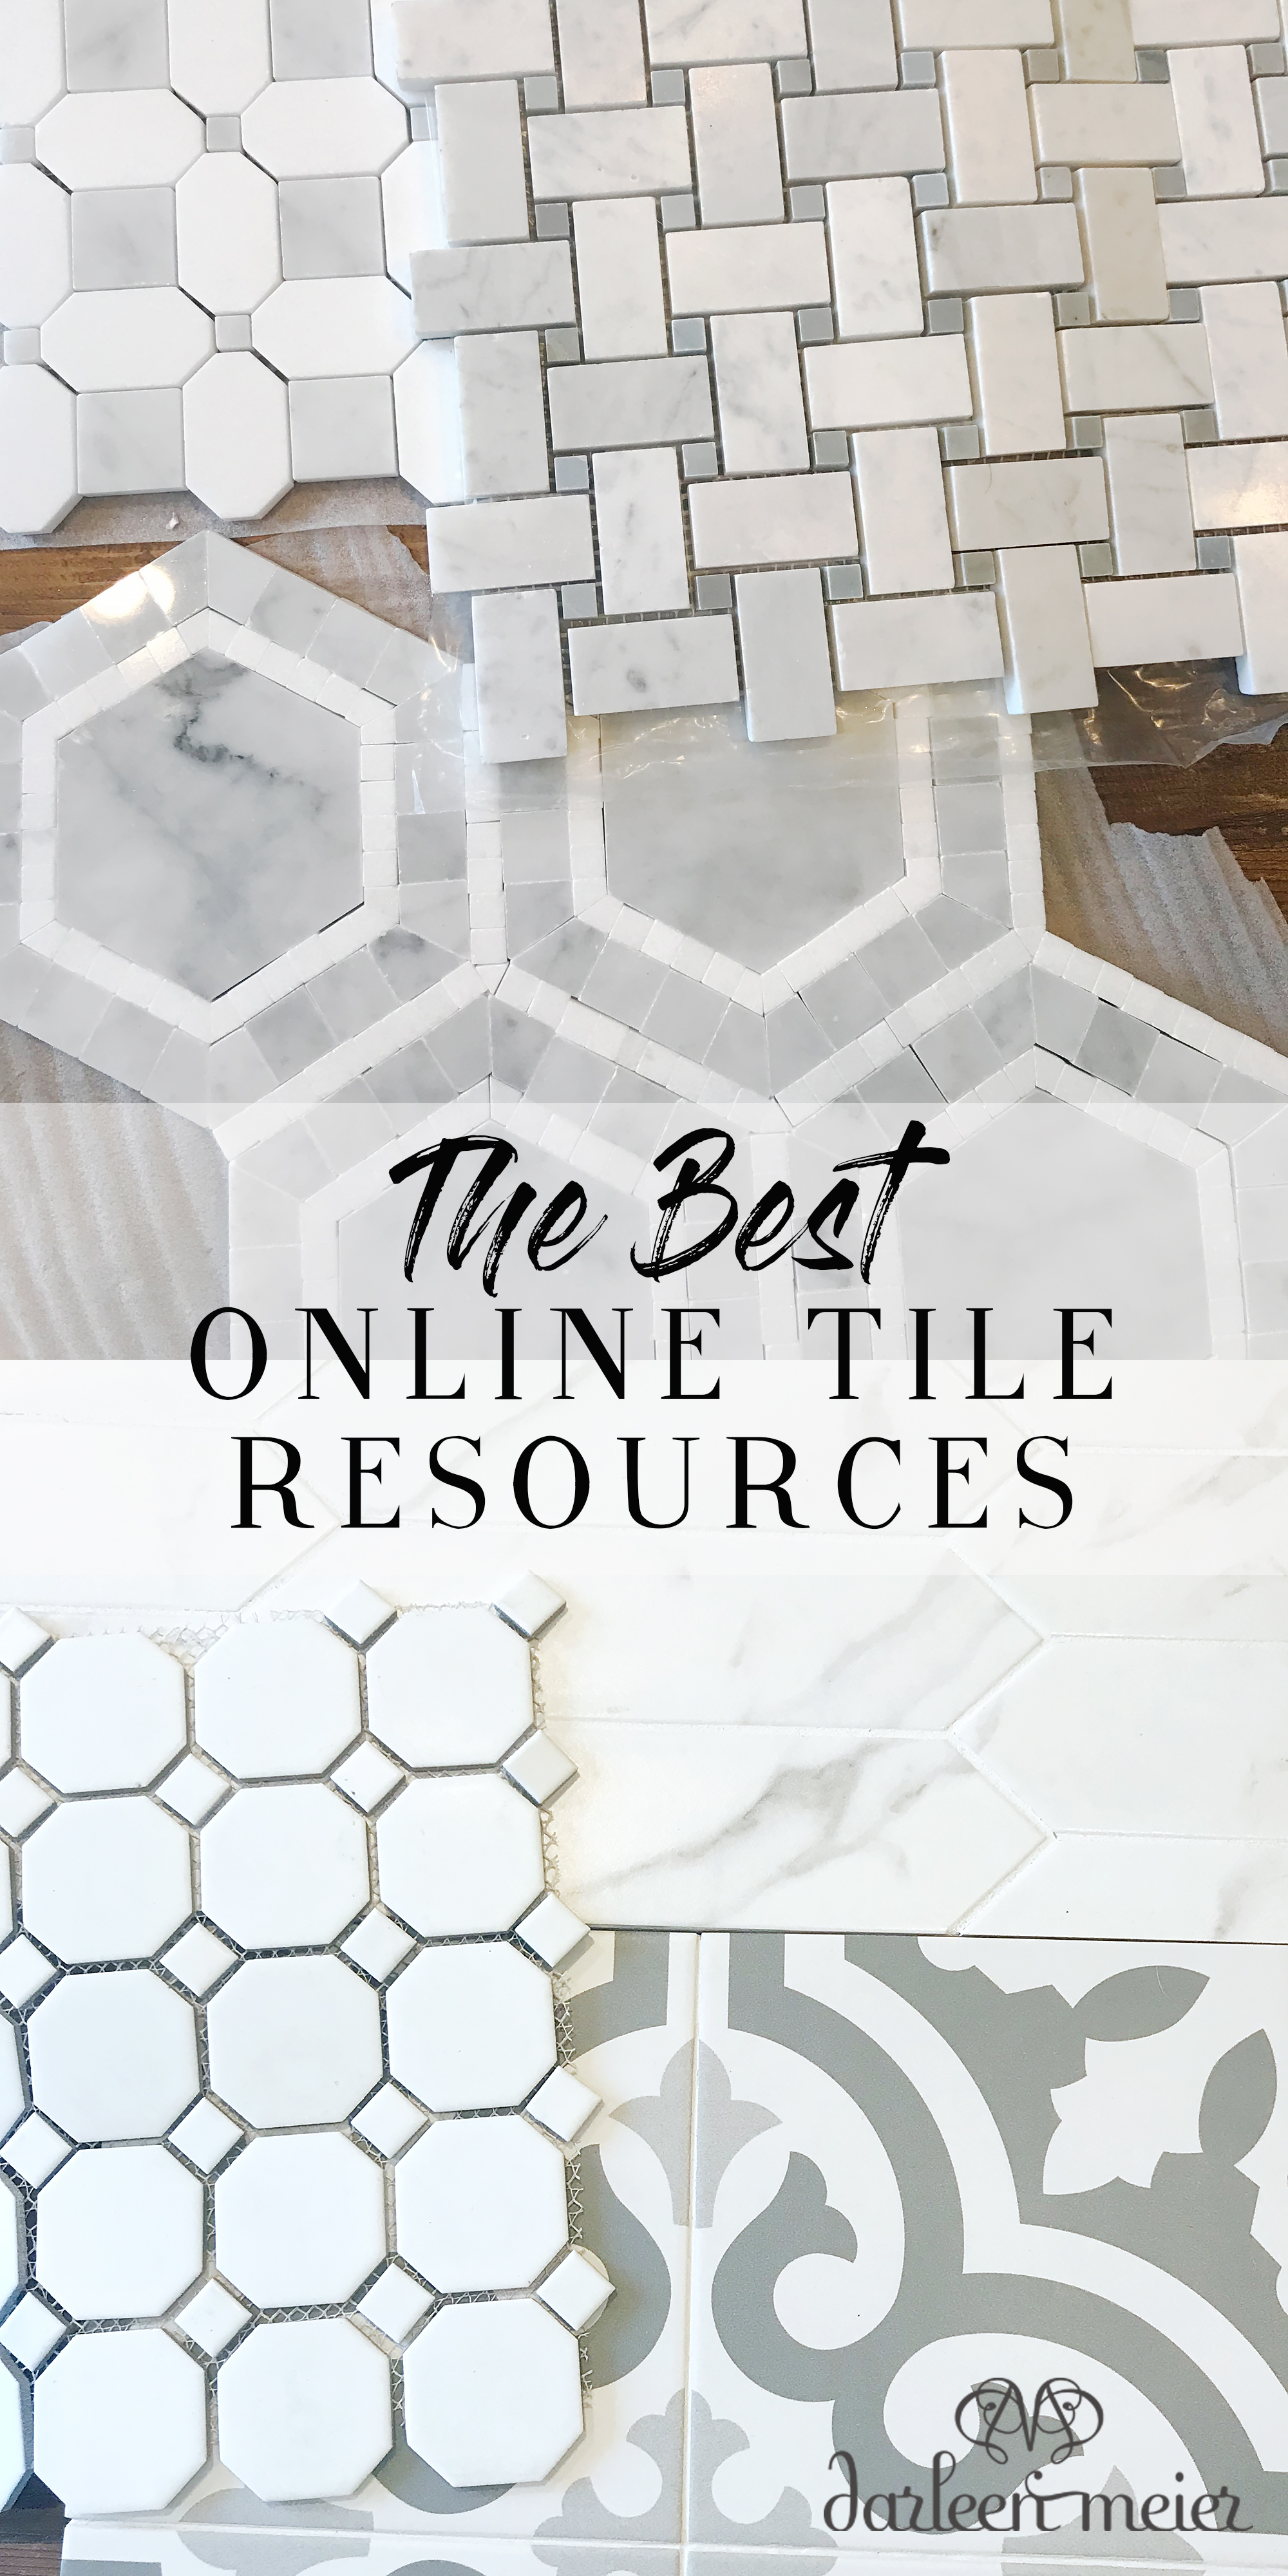 The Best Online Tile Resources || Darling Darleen #darlingdarleen #tileguide #bestof #tile